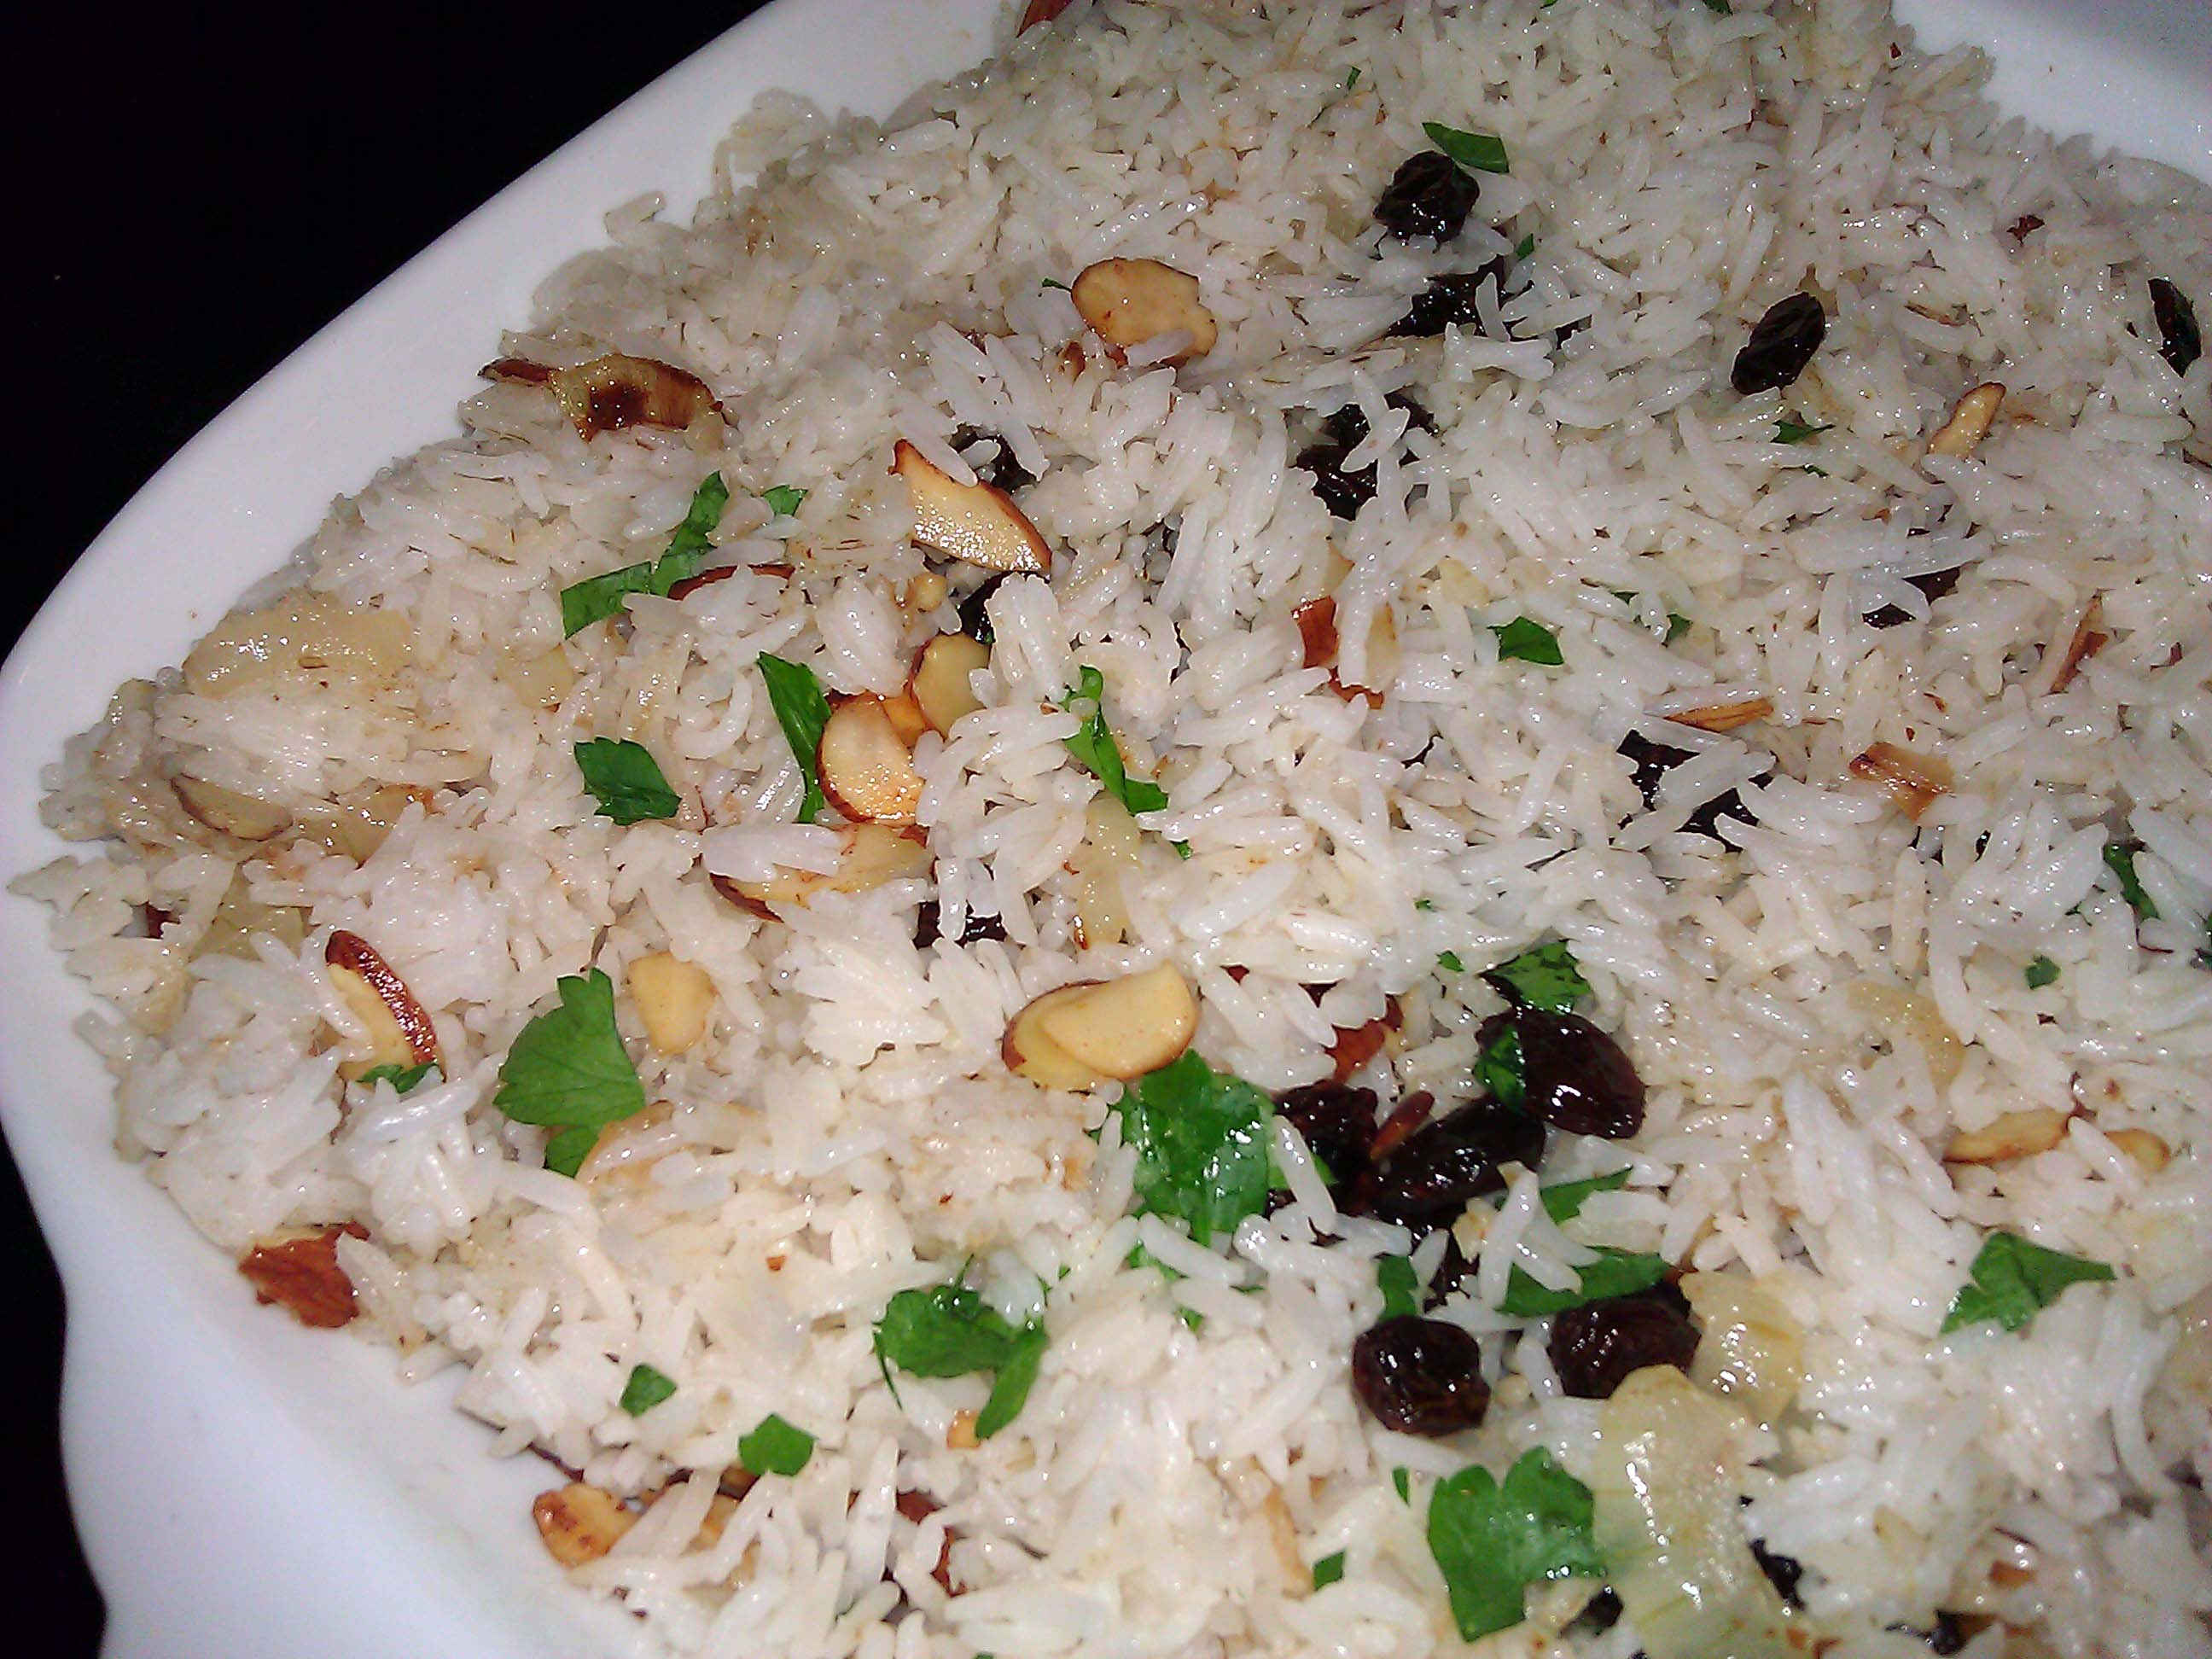 Quick and easy indian rice photos and indian rice recipes indian quick and easy indian rice photos and indian rice recipes indiannius kitchen forumfinder Images